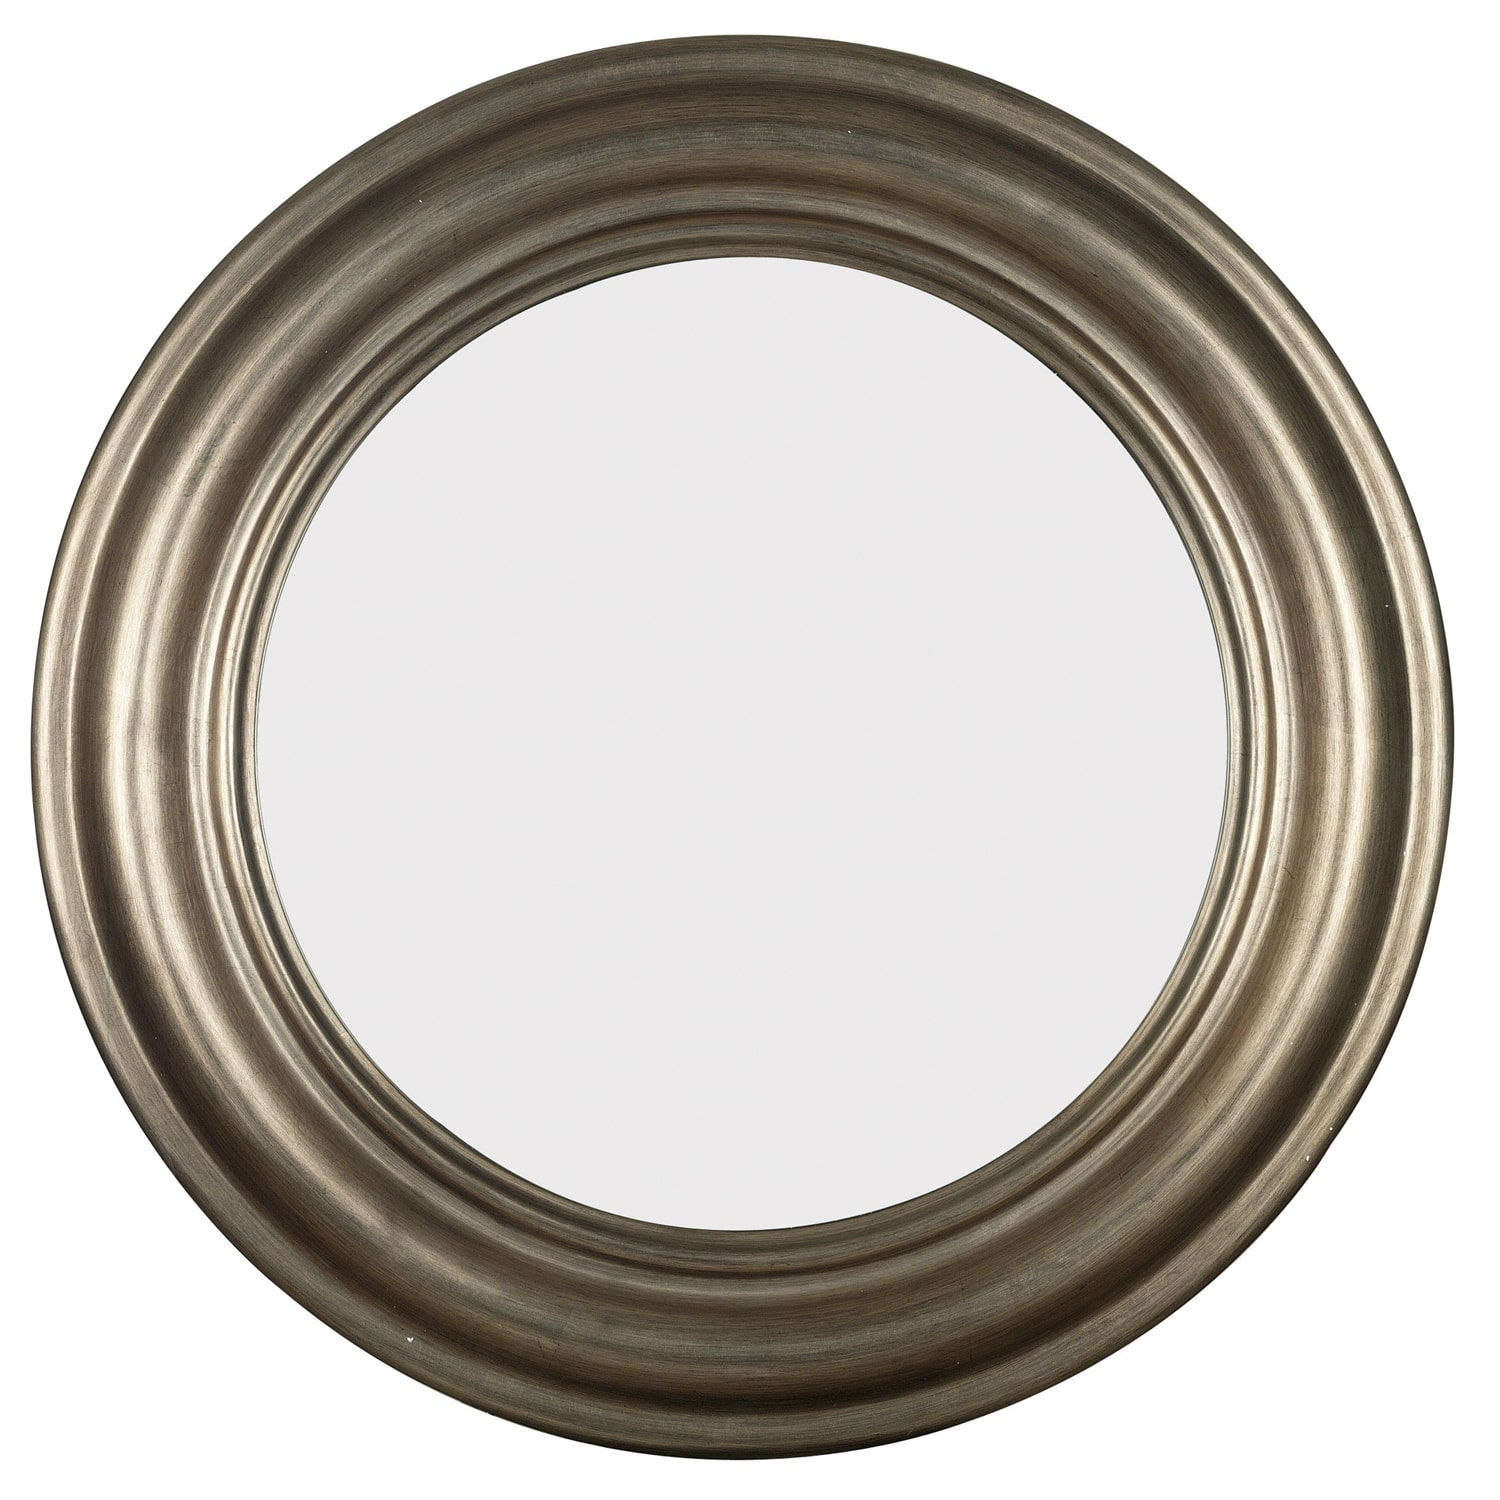 Featured Image of Round Antique Mirrors